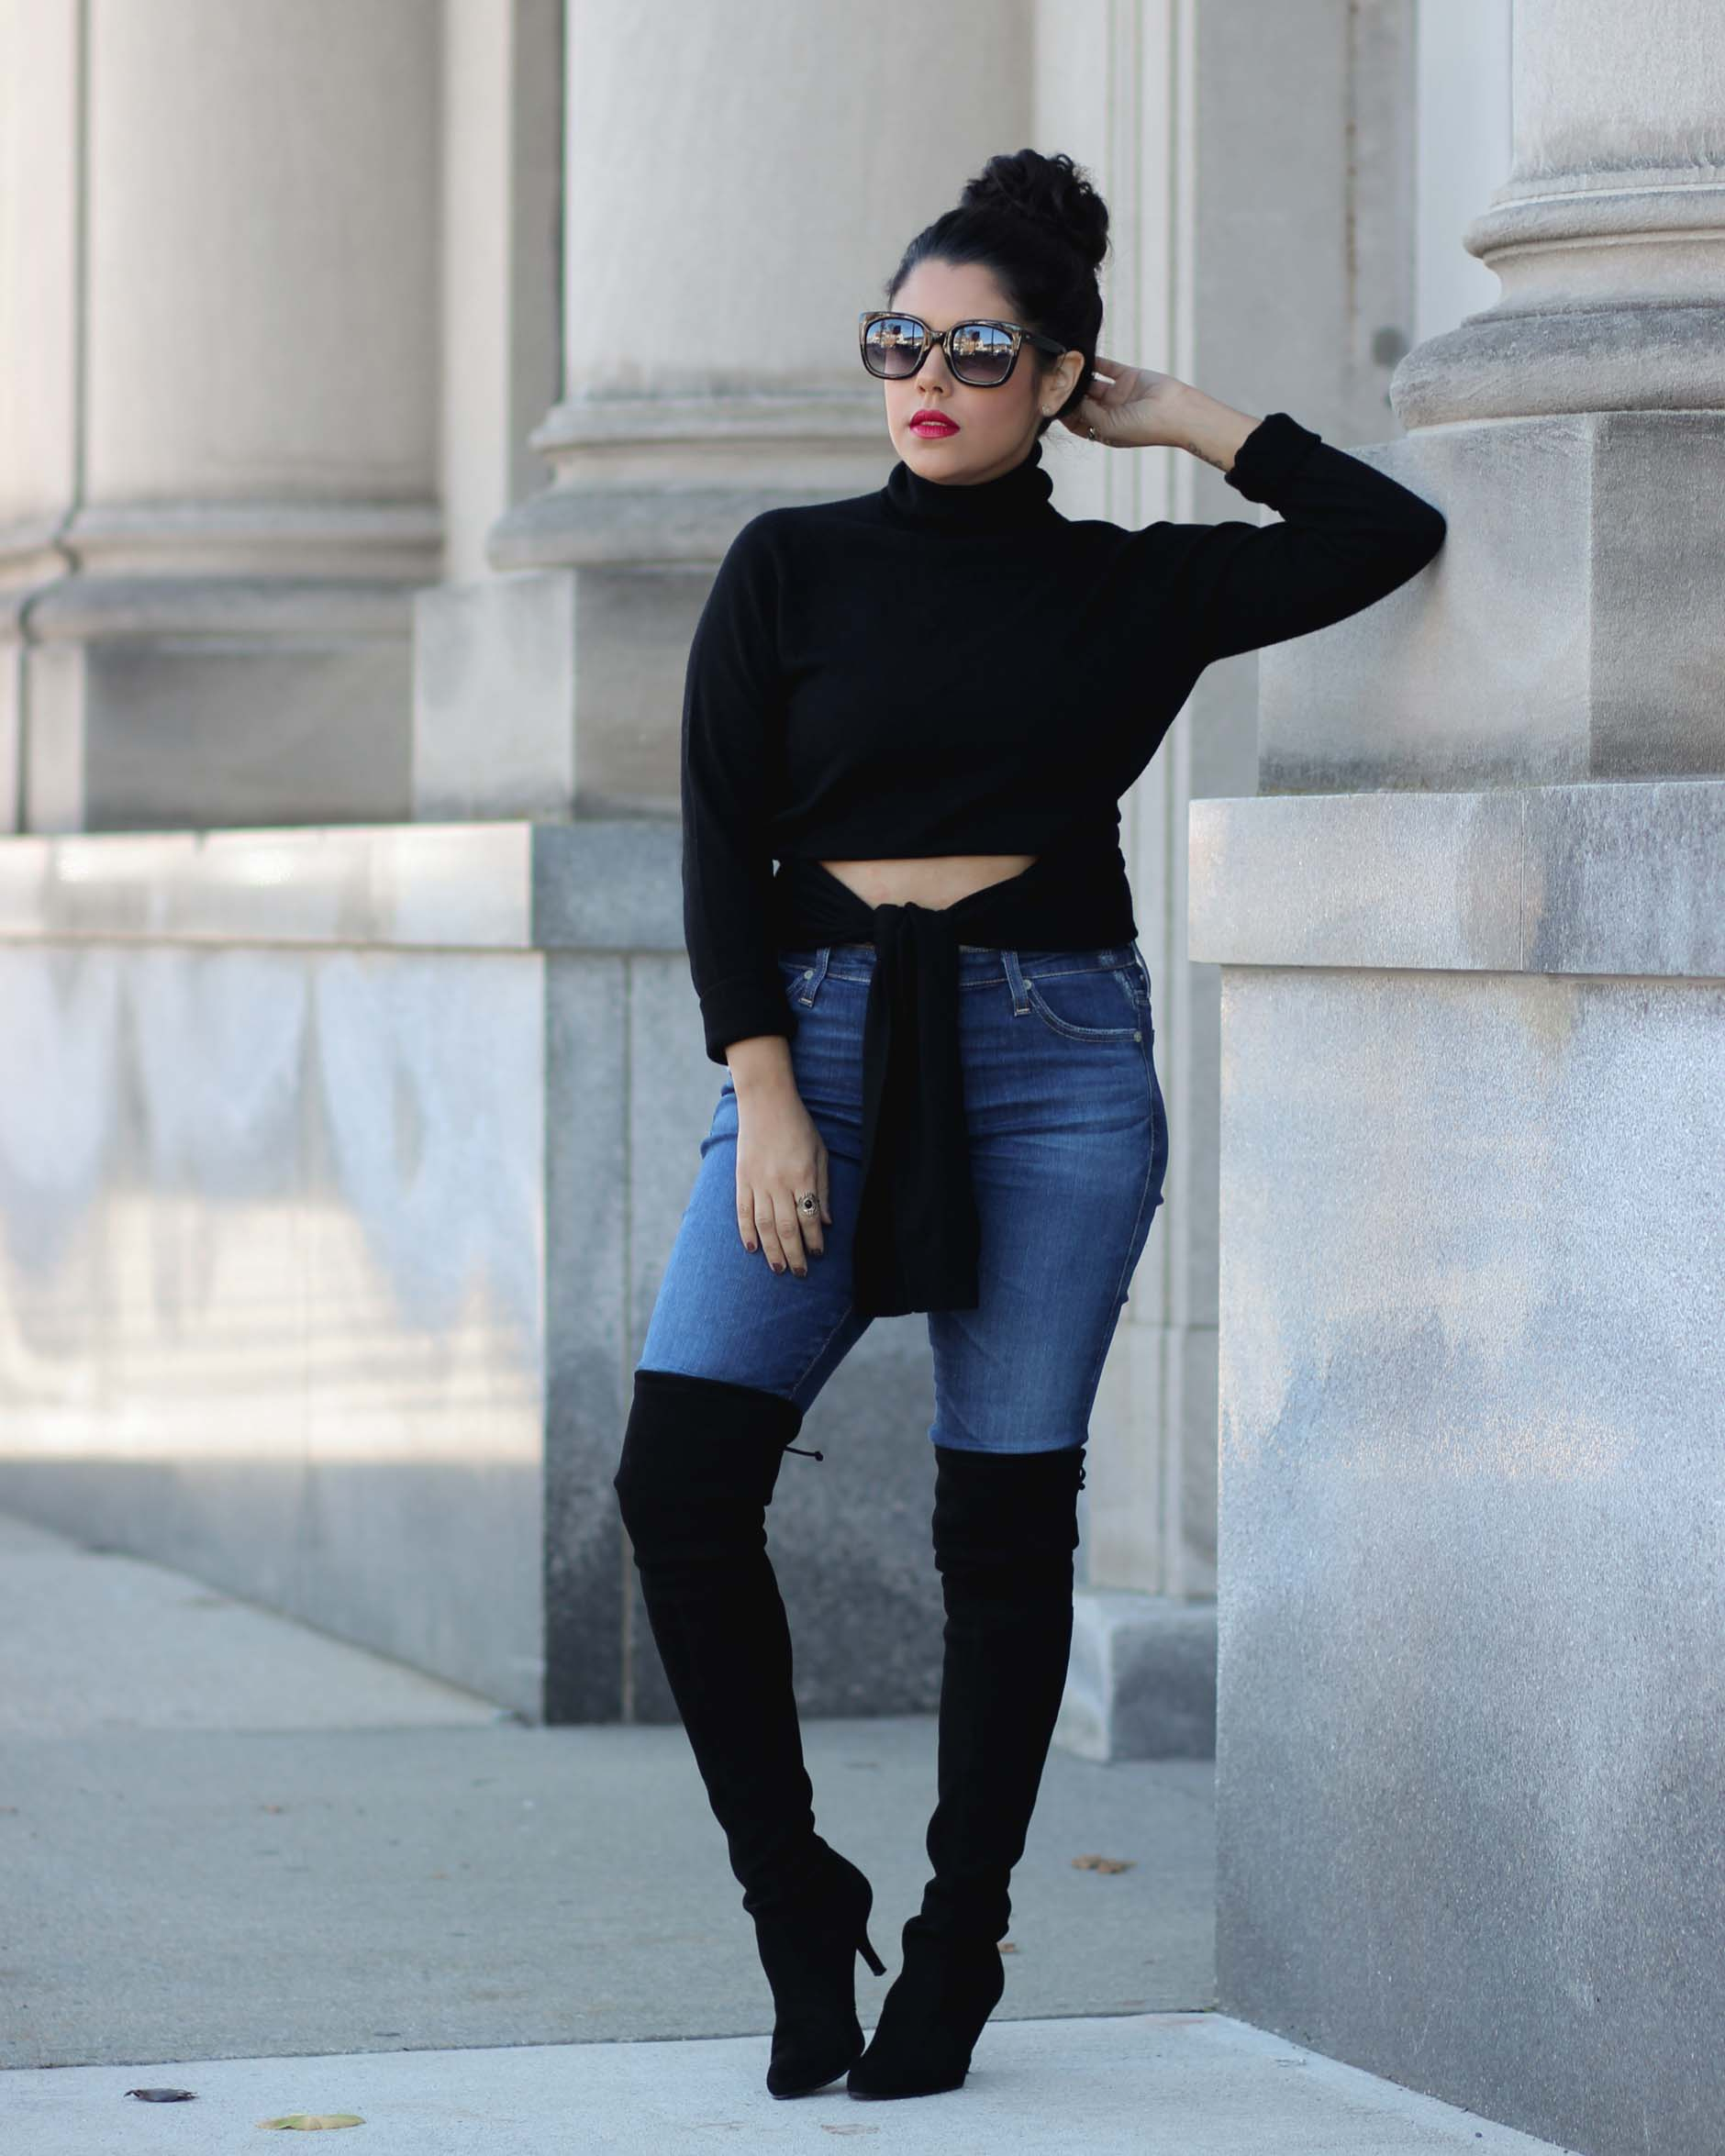 lifestyle blogger naty michele wearing stuart weitzman otk boots and a kendall and kylie sweater